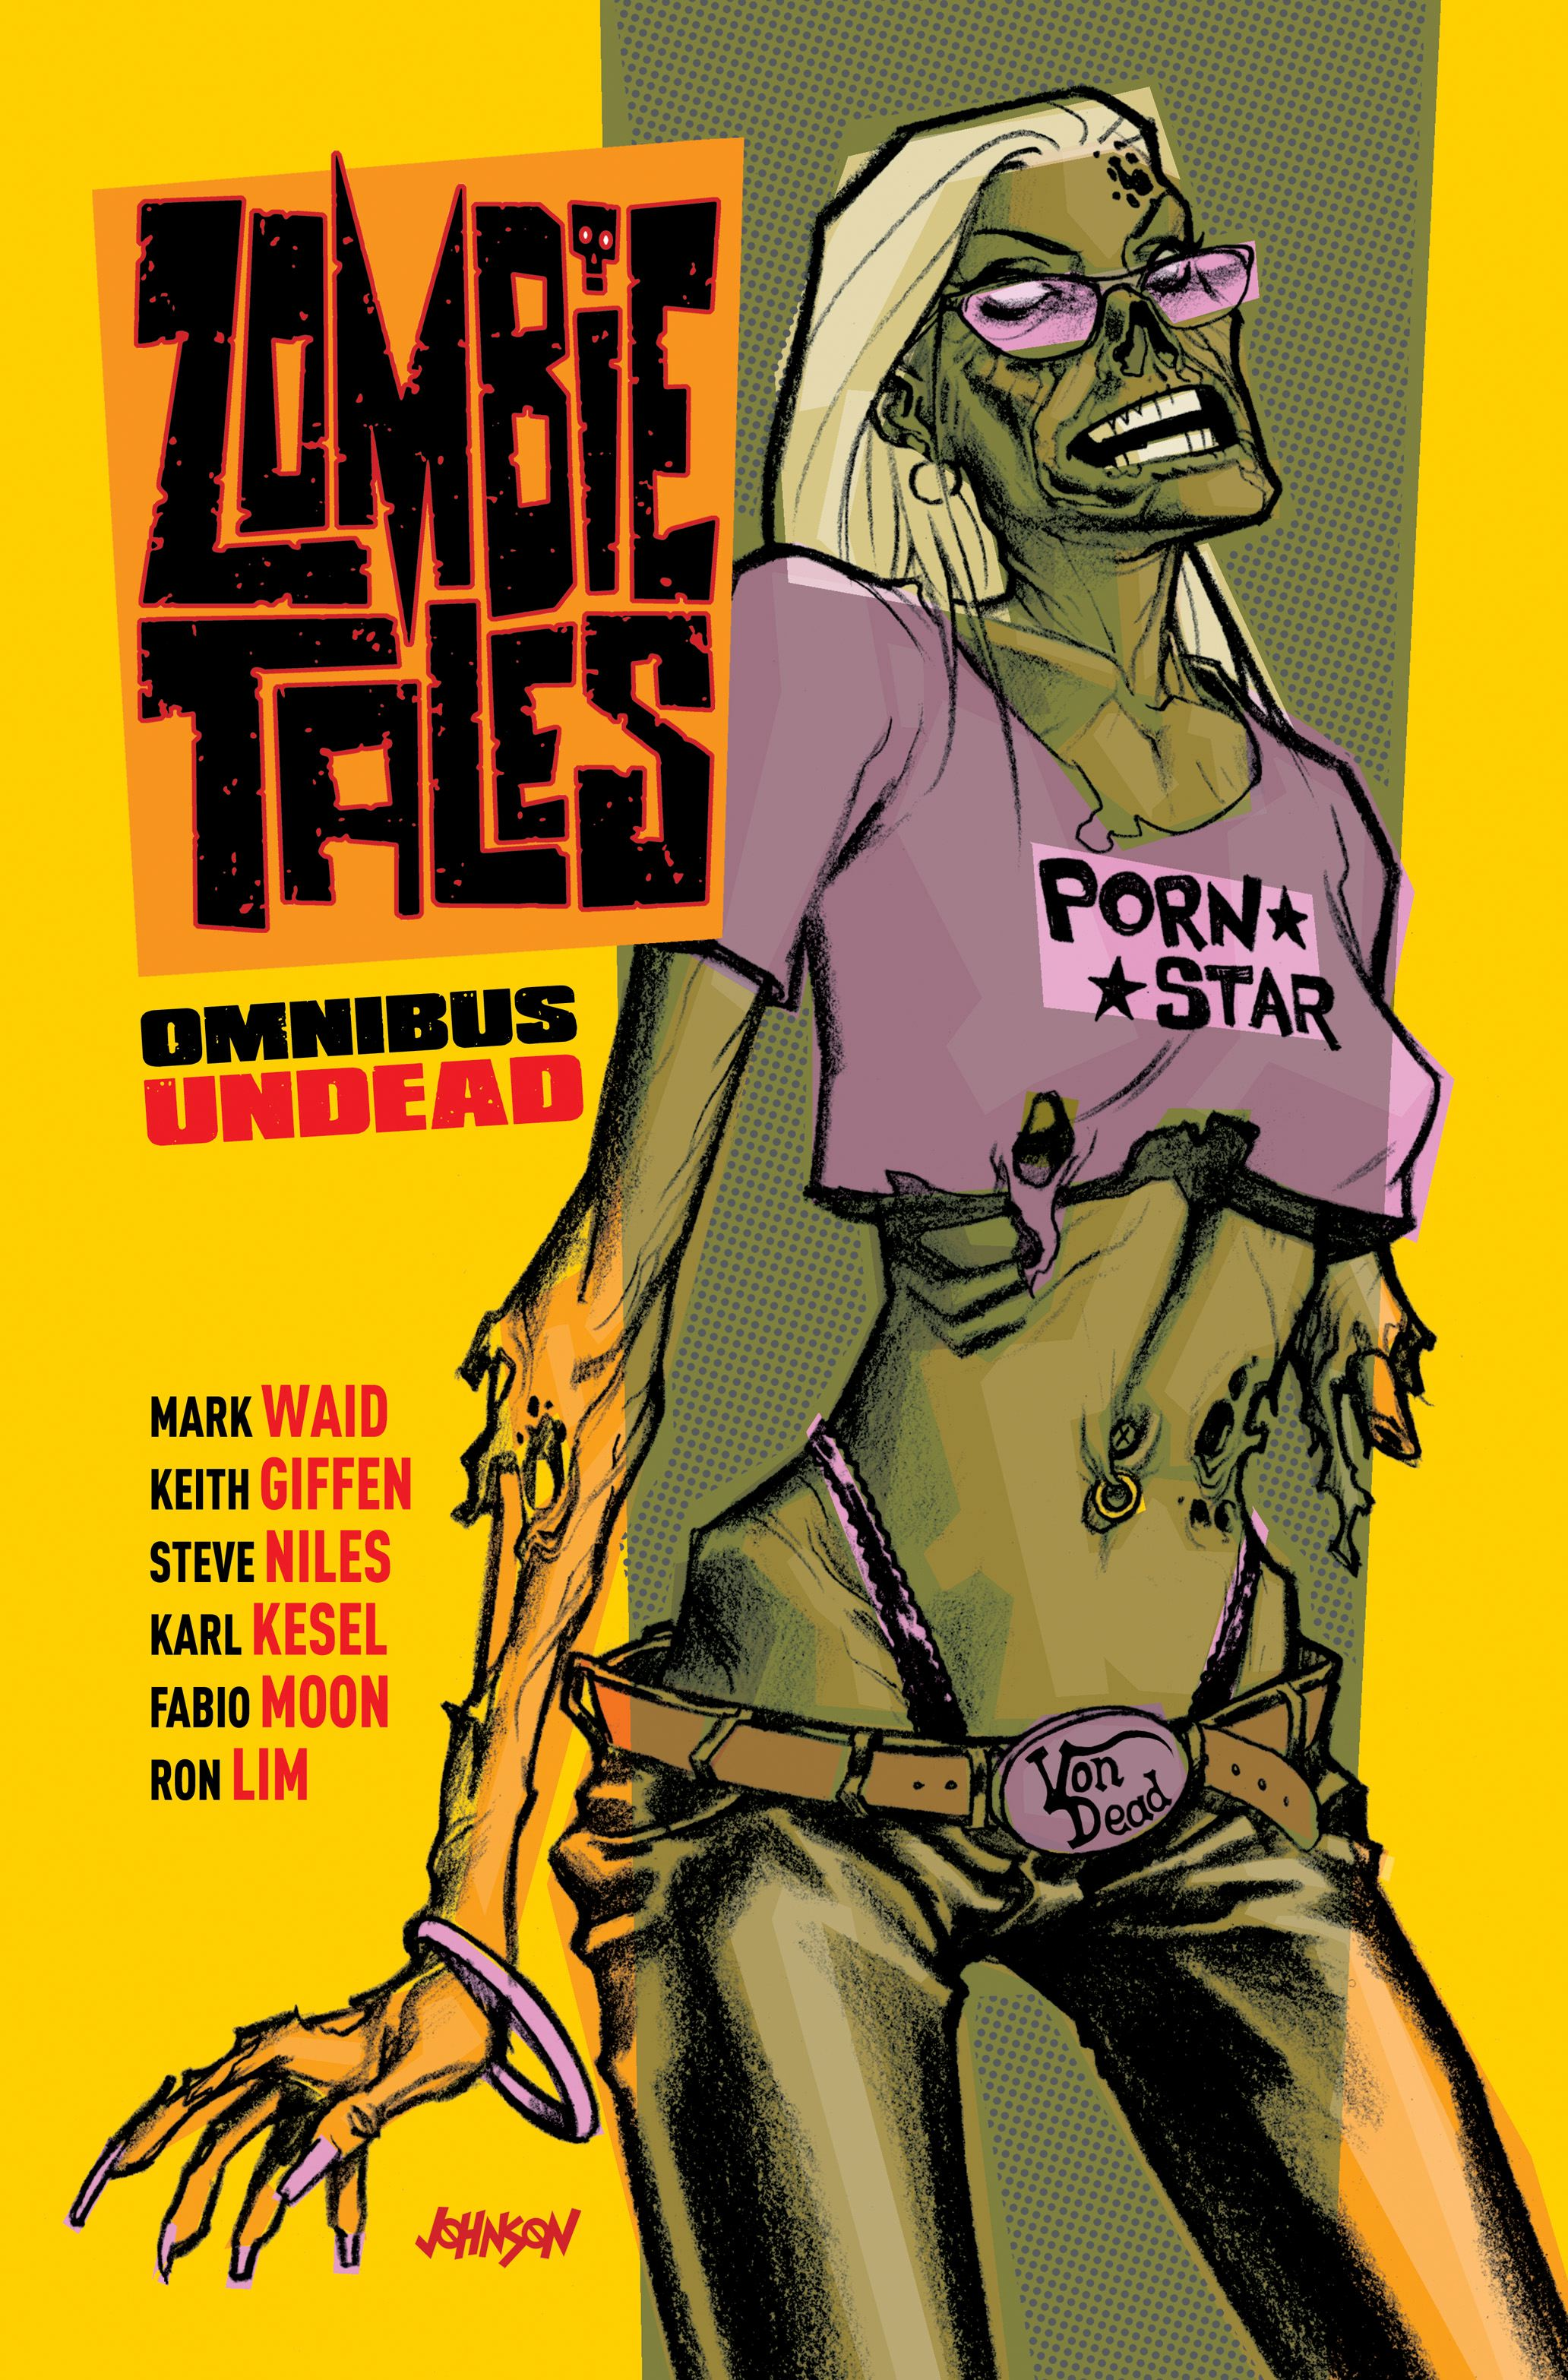 Zombie-tales-omnibus-undead-9781608860746_hr